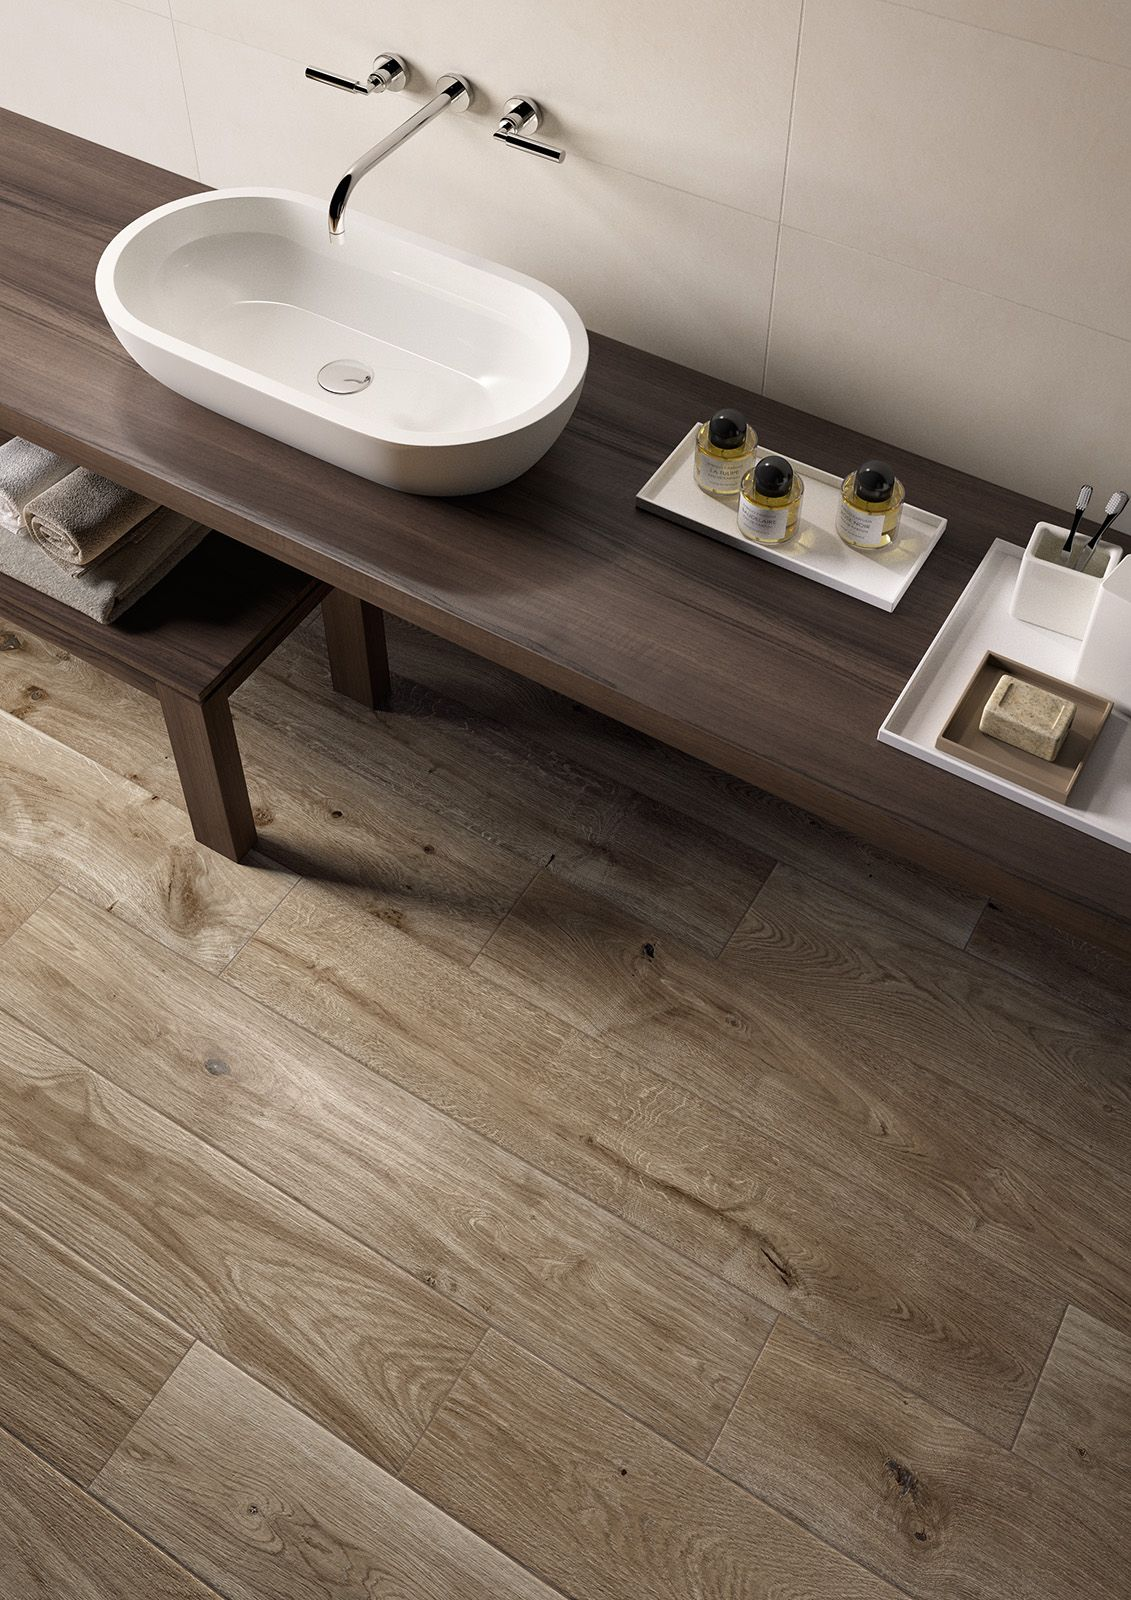 Treverkever piastrelle in ceramica marazzi5820 bathroom ideas ceramo tiles perth aims to offer the perth tile buying community a refreshing and innovative tile buying experience dailygadgetfo Images